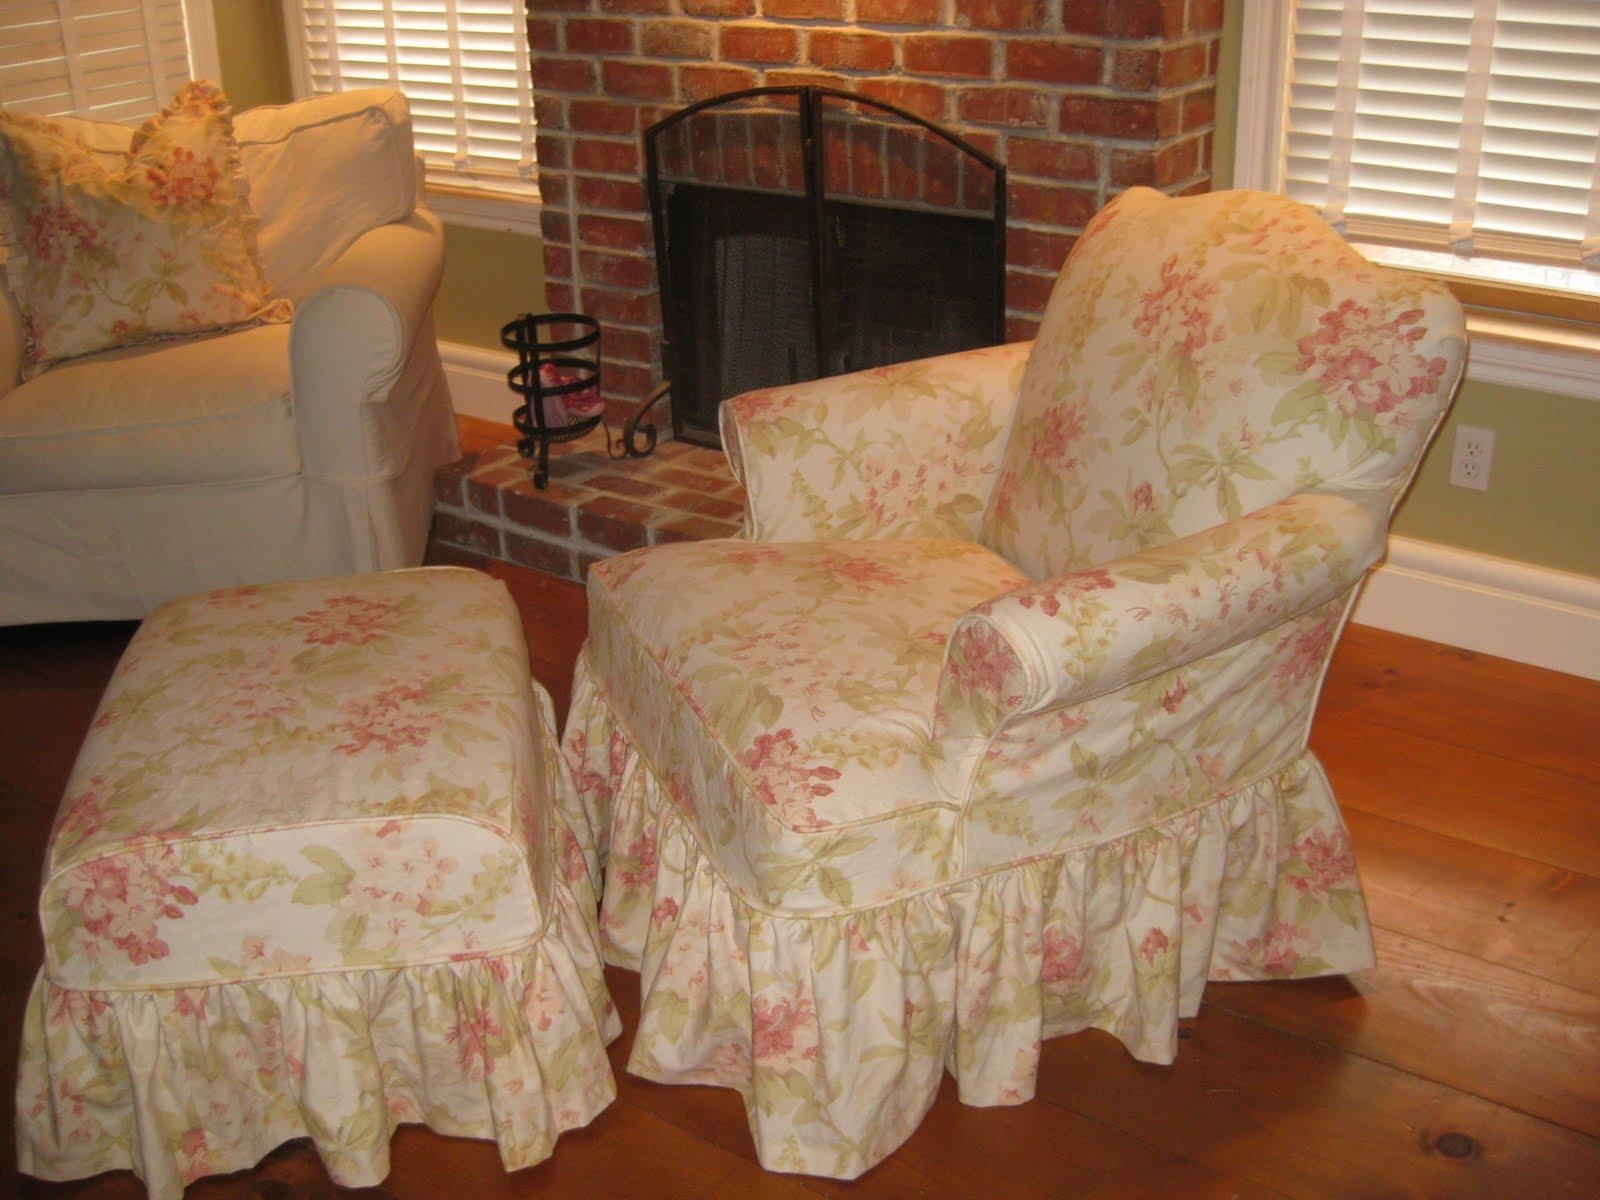 Chic Yellow White Chair Cover For Wingback Chair On Grey Shag Rug Intended For Shabby Chic Sofas Covers (Image 5 of 20)